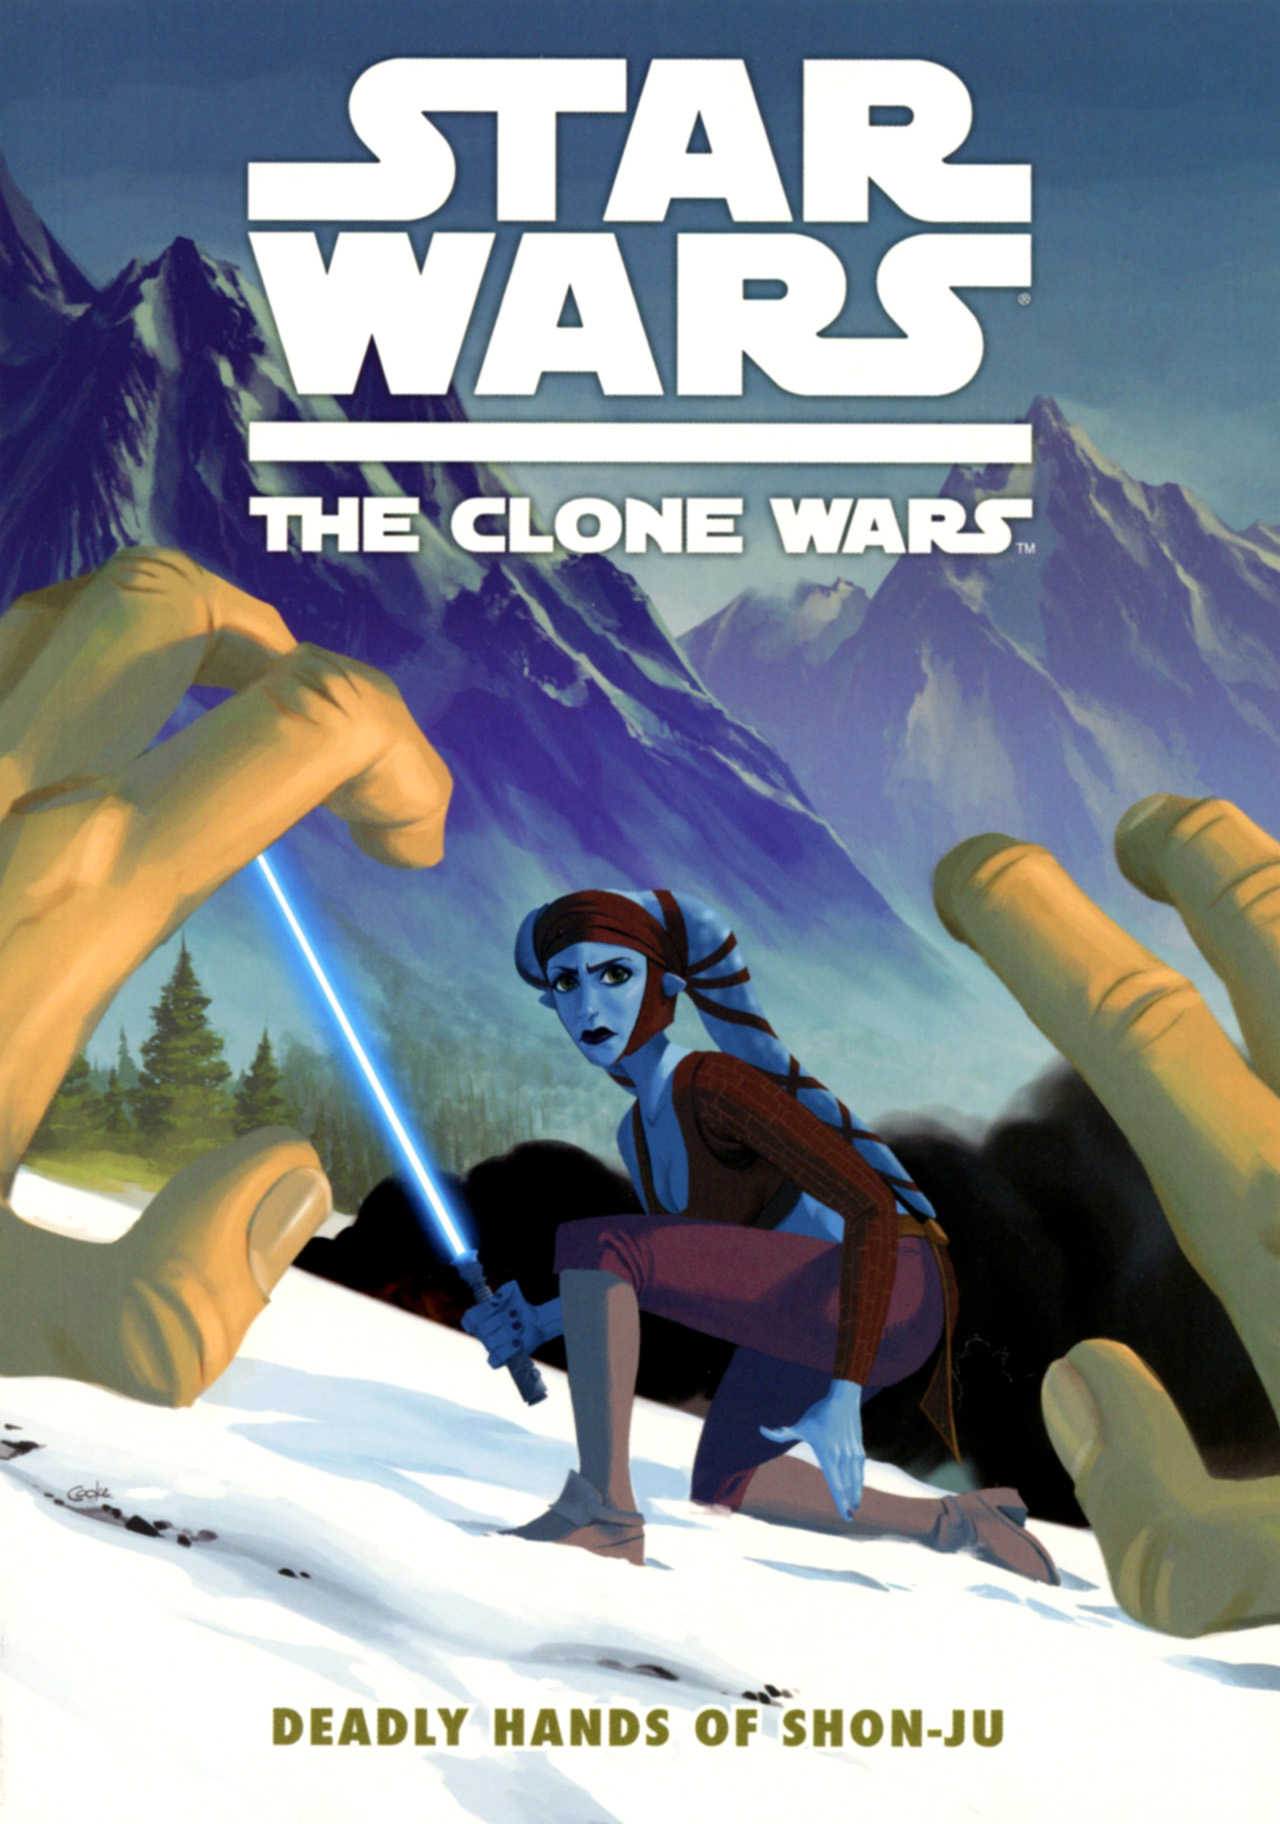 Read online Star Wars: The Clone Wars - Deadly Hands of Shon-Ju comic -  Issue # Full - 1